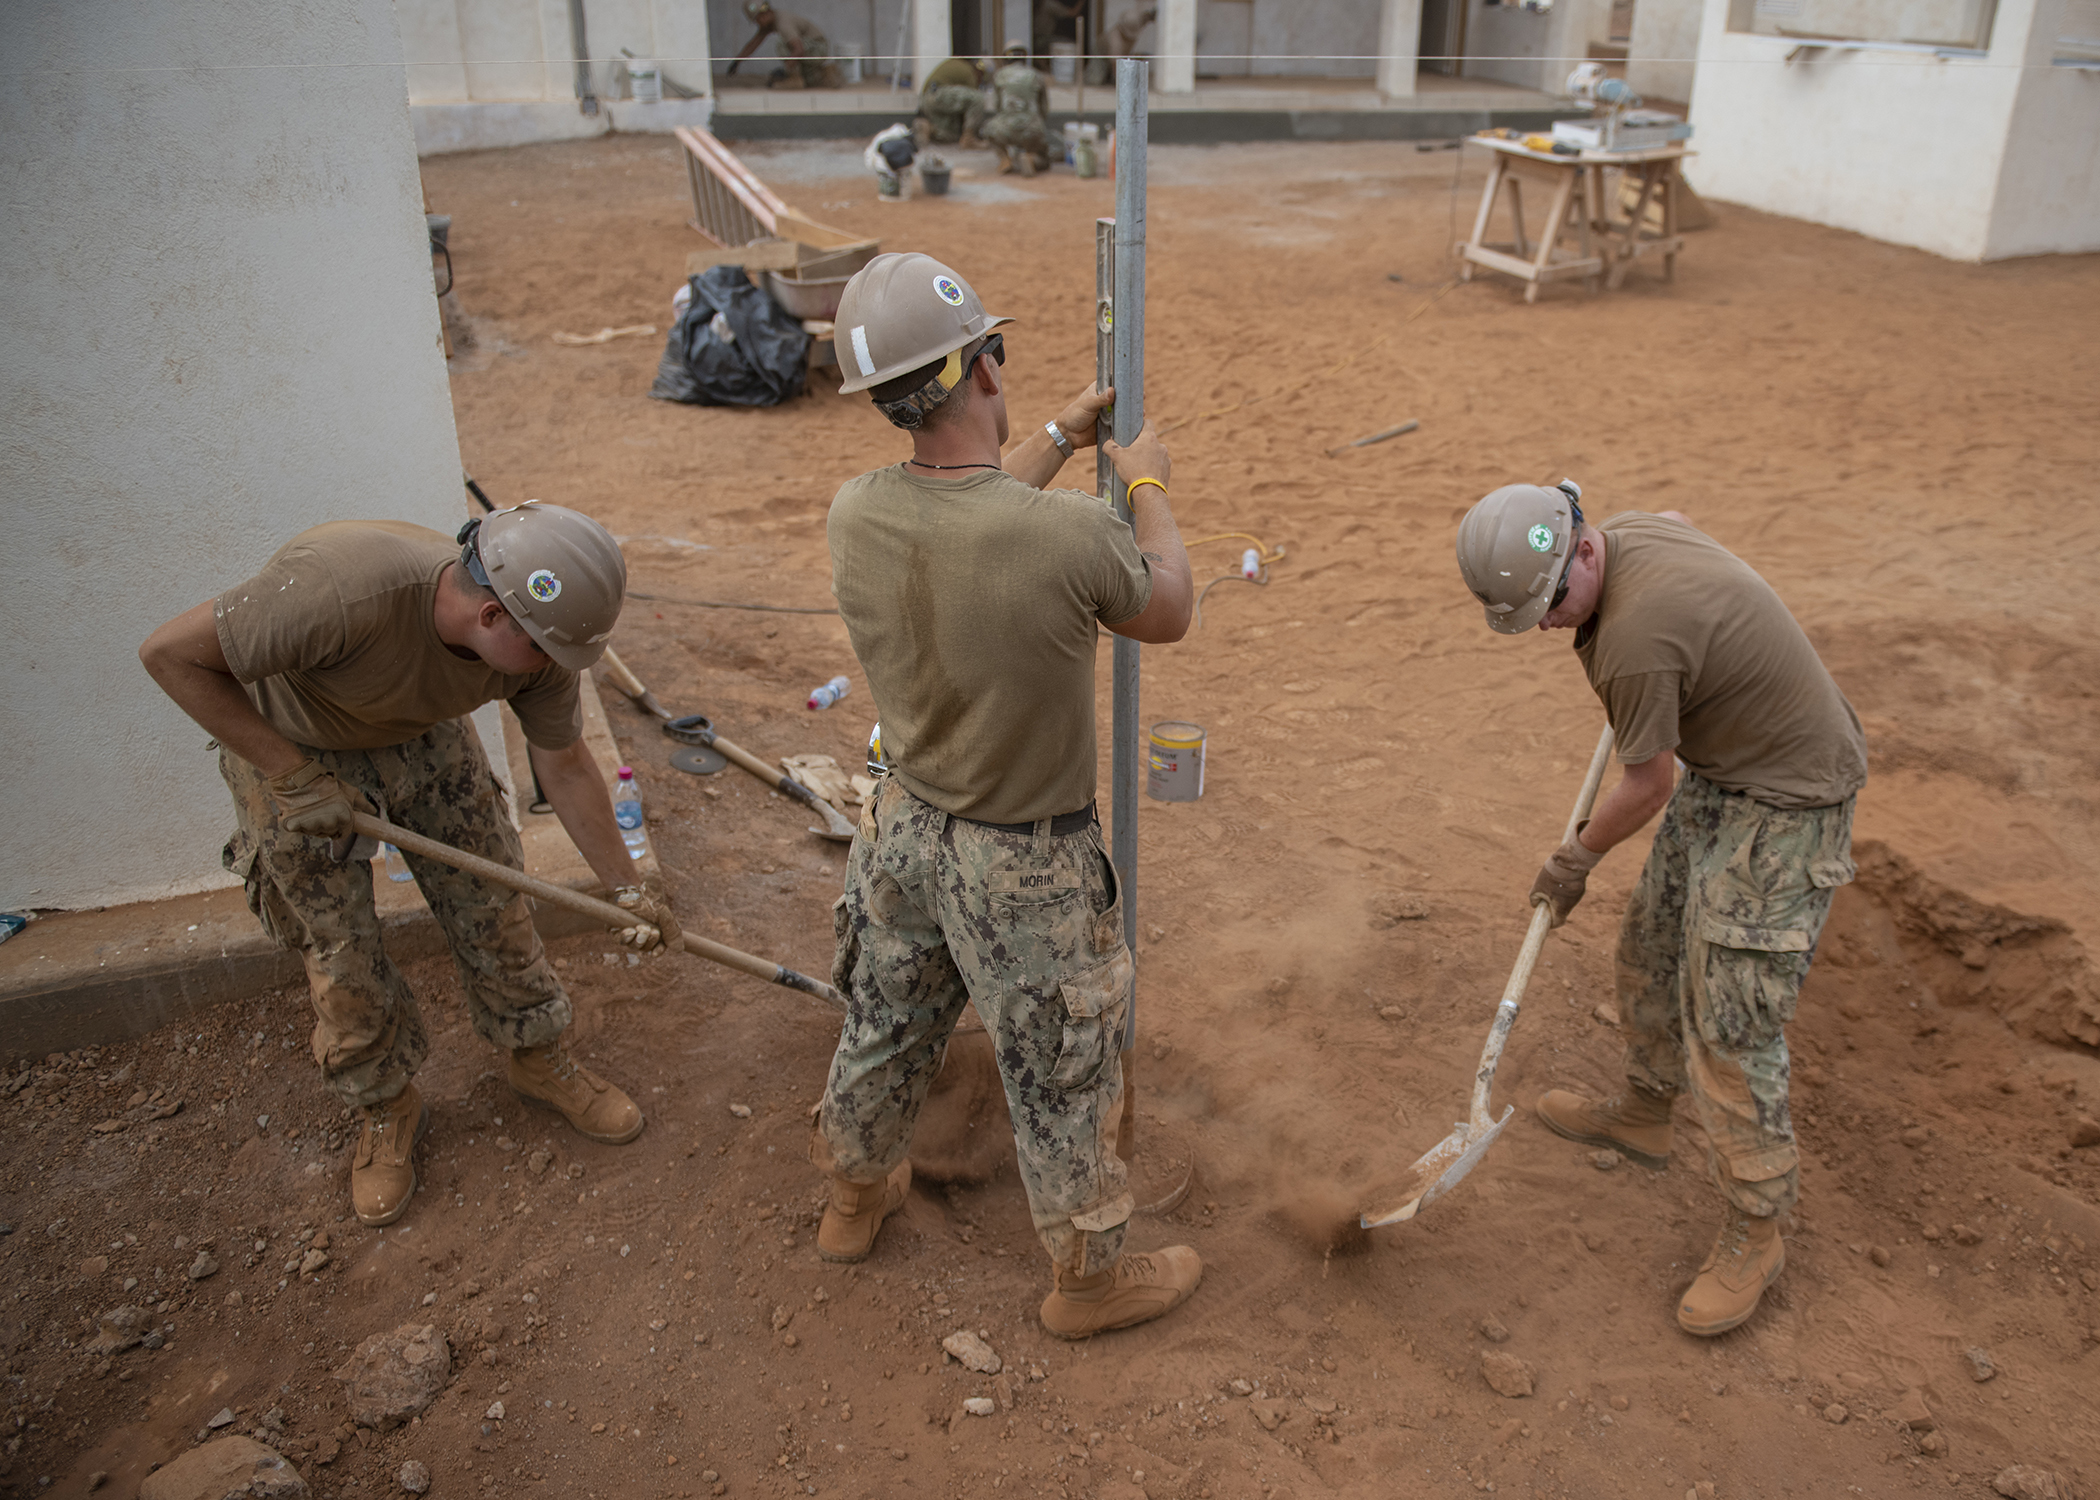 U.S. Navy Seabees assigned to Naval Mobile Construction Battalion 1, Combined Joint Task Force-Horn of Africa, Camp Lemonnier, Djibouti, build a fence during the construction of the future Ali Oune, Djibouti, Women's Medical Clinic, Dec. 27, 2018. The clinic is intended to enhance the Ministry of Health for Djibouti's ability to provide basic medical, birth and after care to the Ali Oune village and its more than 1,000 residents and rural neighbors. (U.S. Air Force photo by Tech. Sgt. Shawn Nickel)